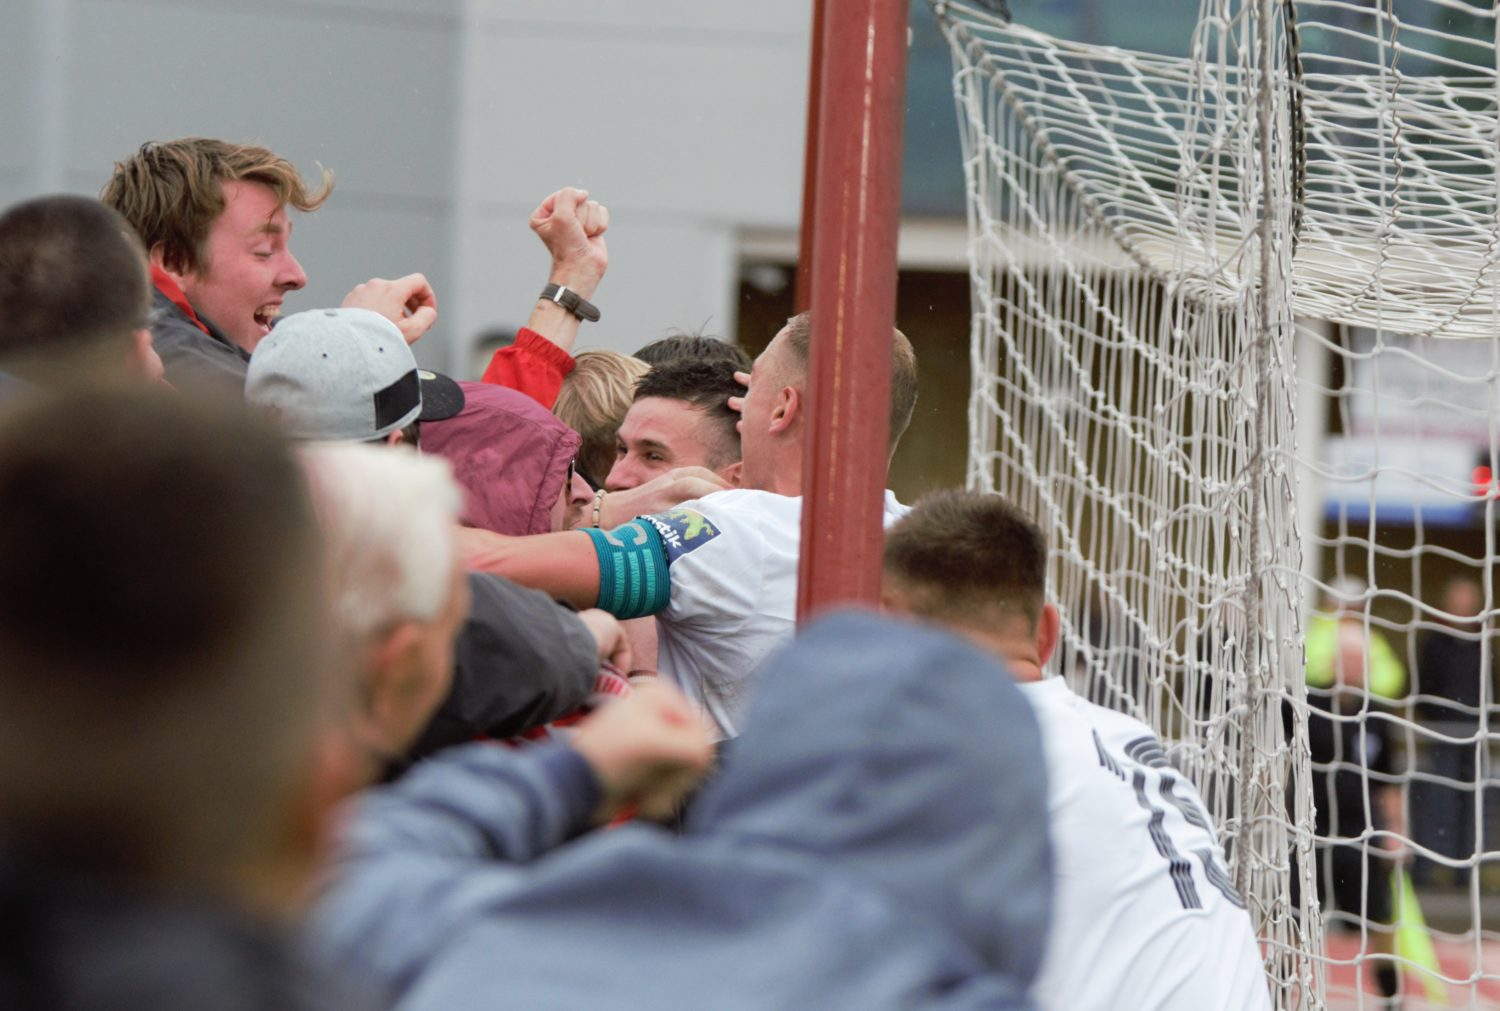 Gallery: Chelmsford City [A] – FA Cup